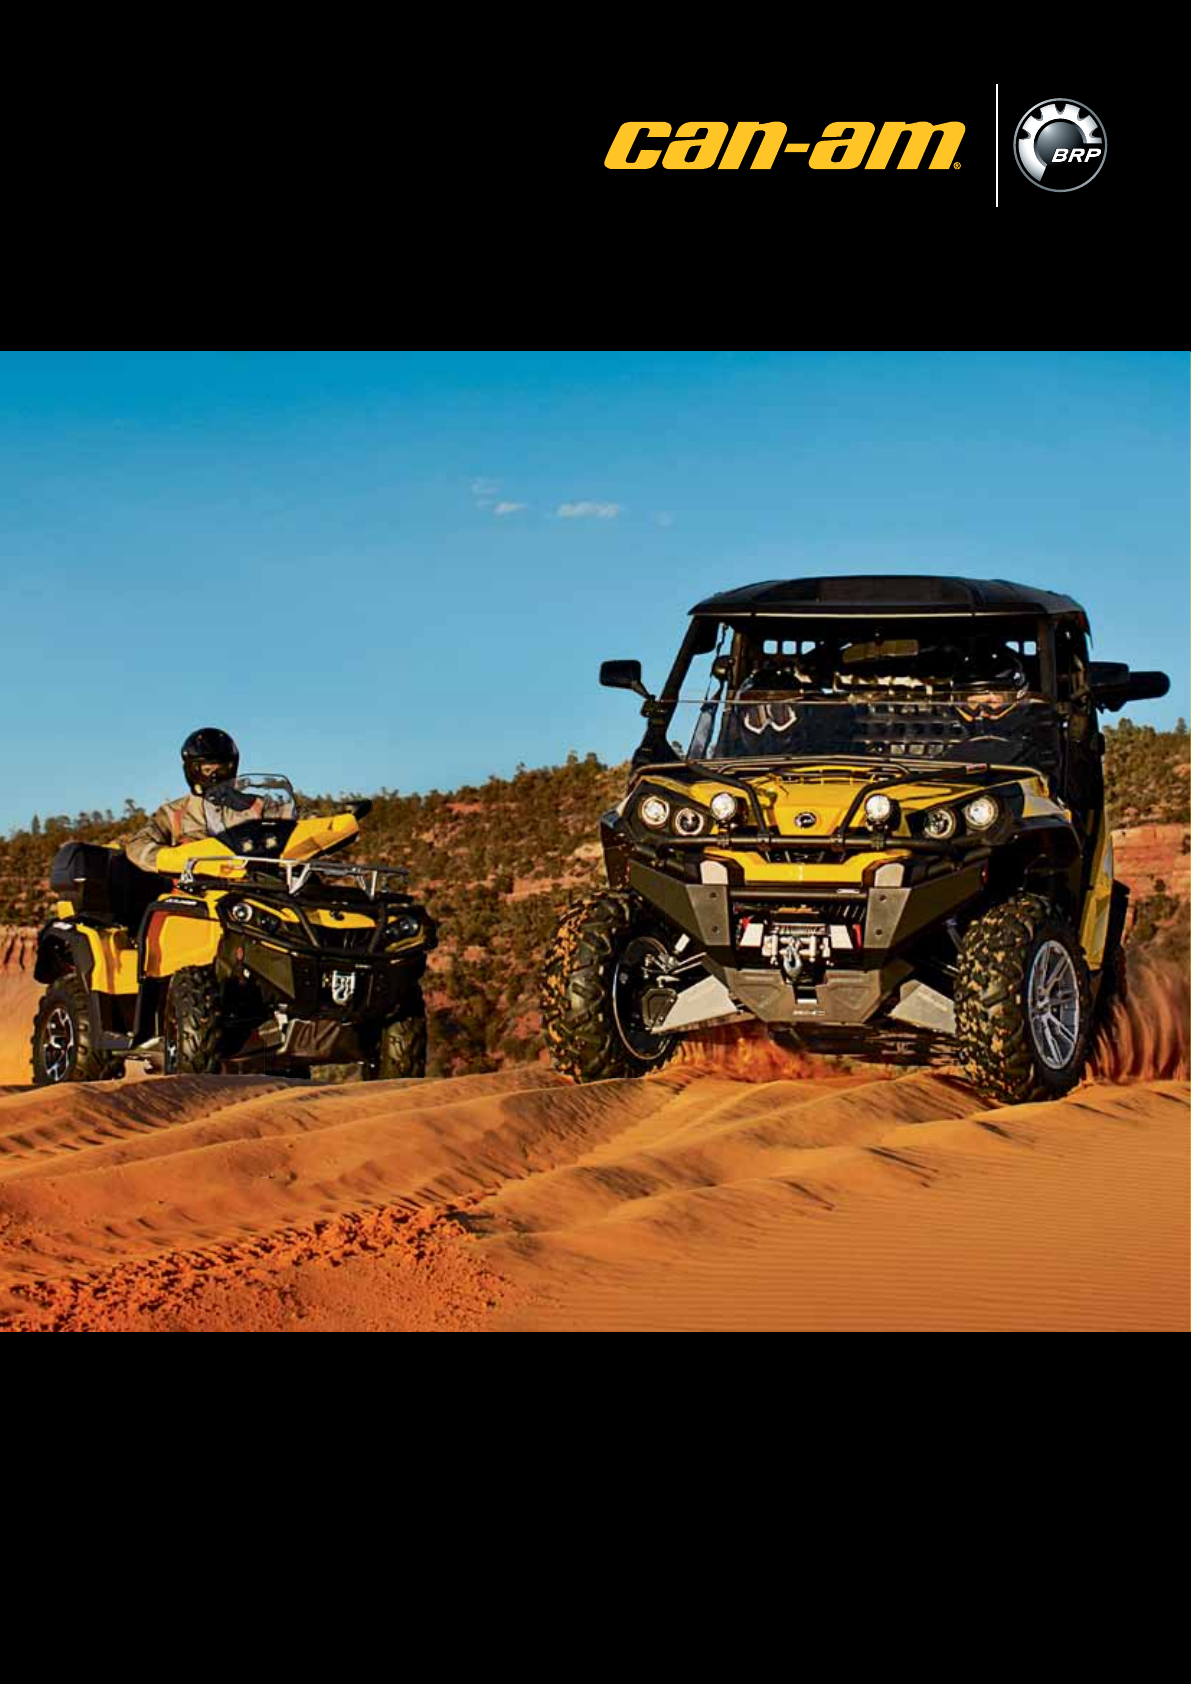 New Standard Black Seat Cover 2006-2011 Can-Am Outlander 650 ATV